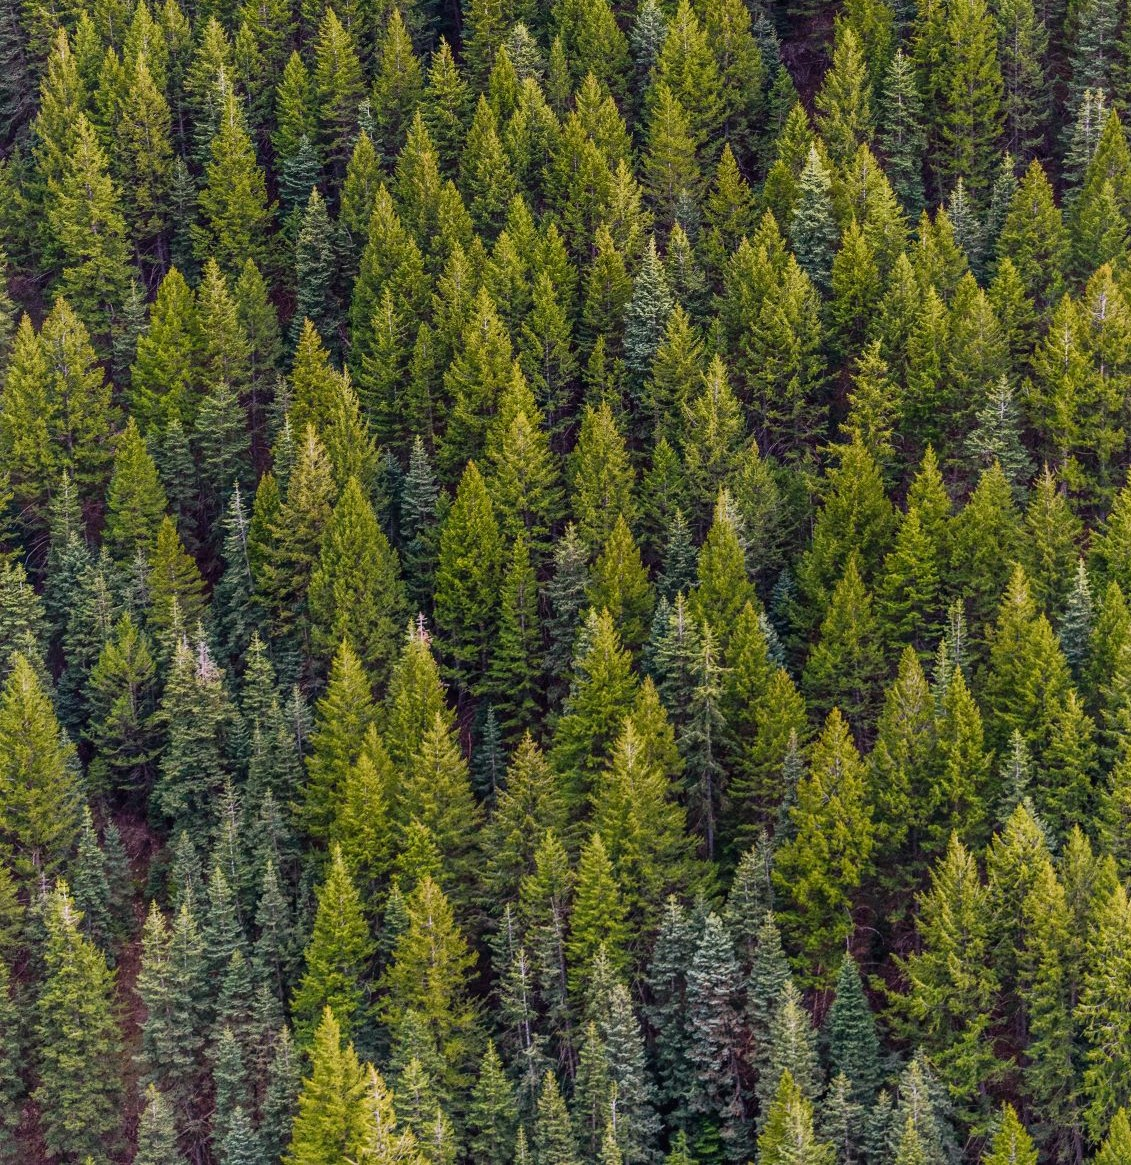 Regency's commitment to the environment reduces forest damage.